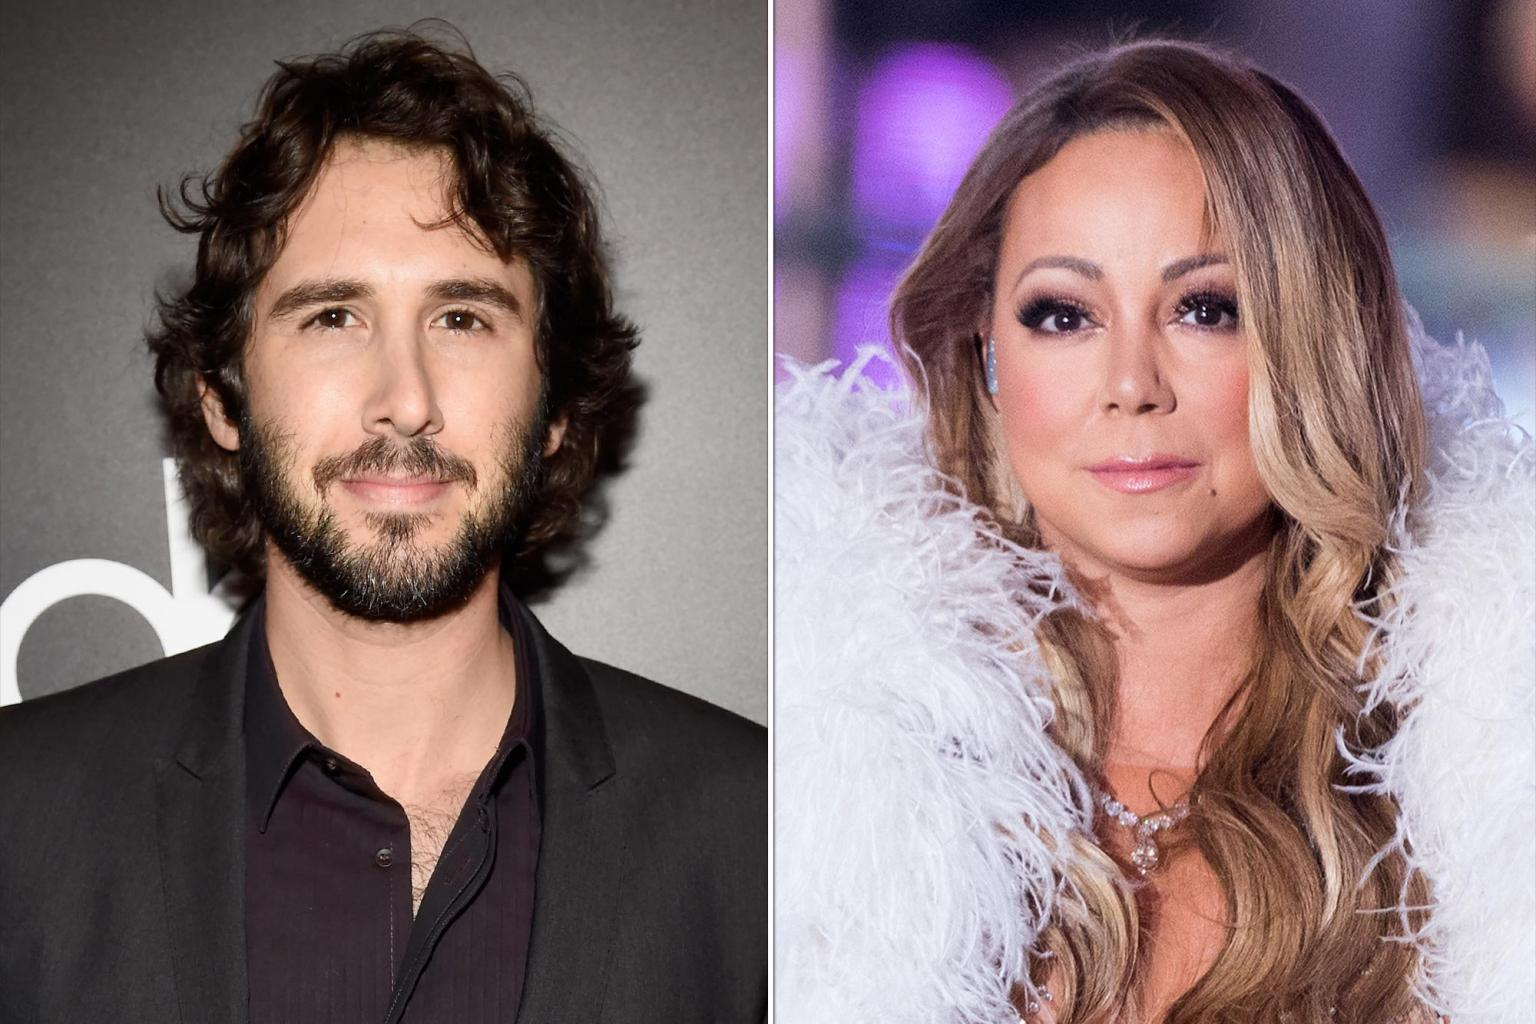 Josh Groban Deletes Tweet Joking About Mariah Carey's New Year's Eve Performance: 'Not Out to Diss Artists'